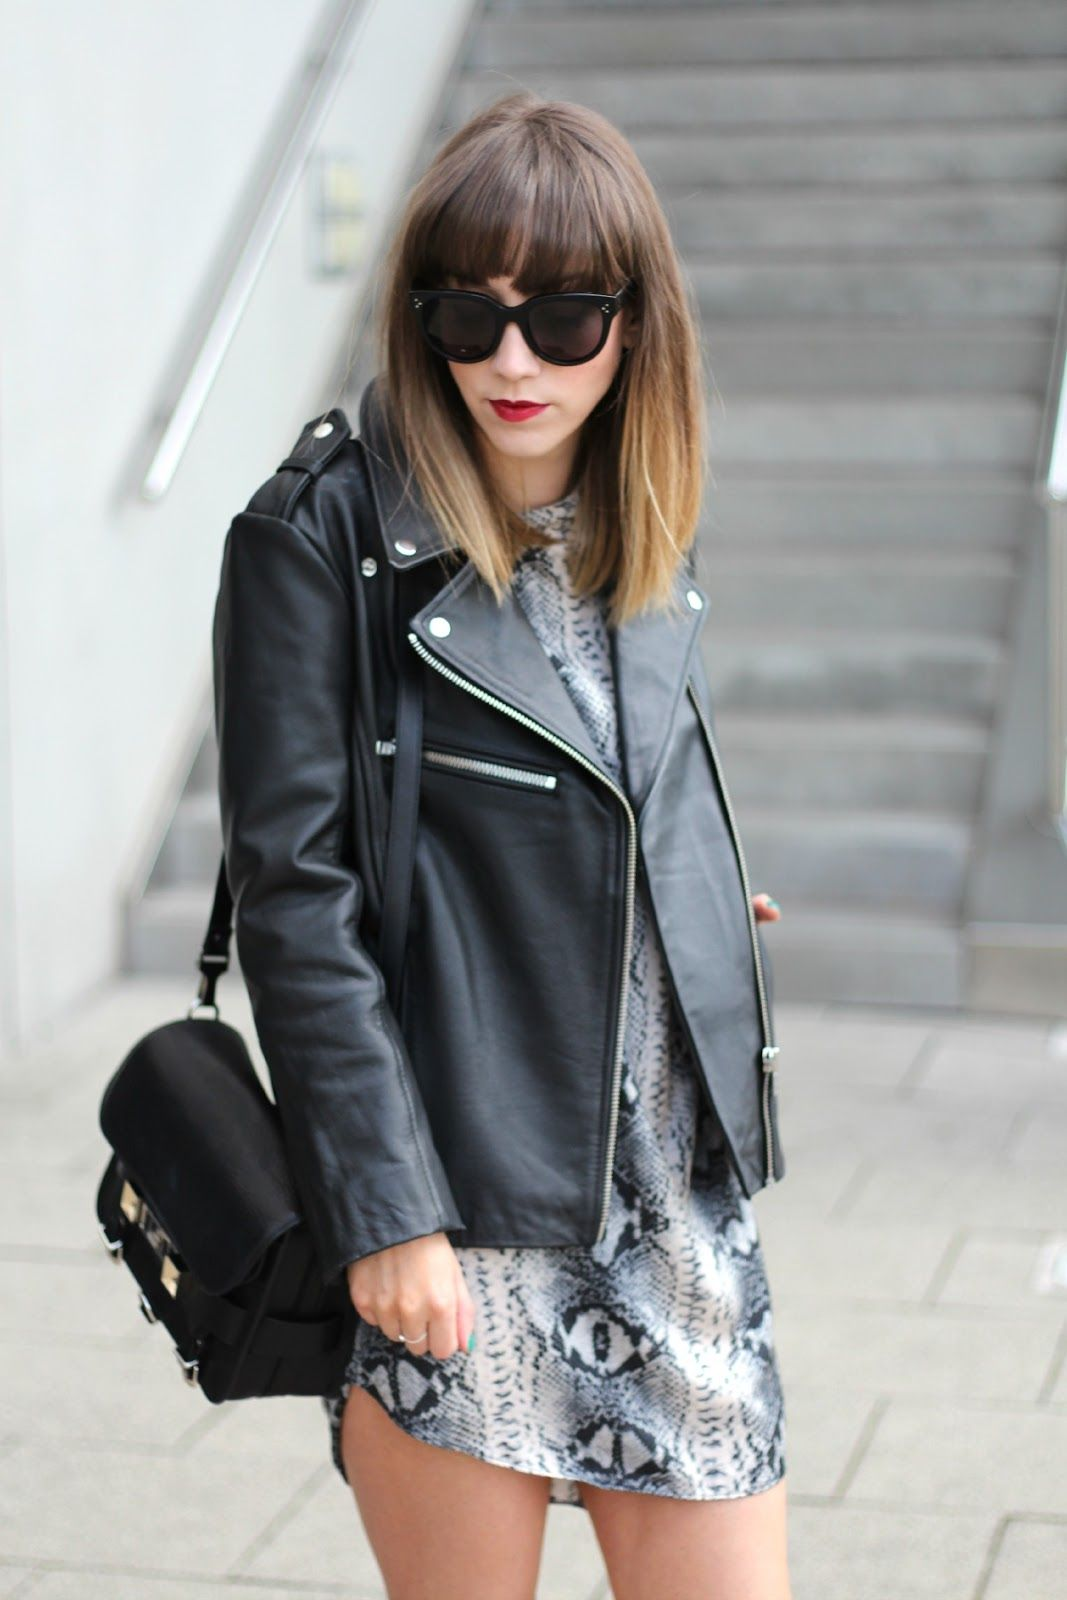 a7f7174e56 The Lovecats Inc: TODAY: The Snake Print Dress - leather jacket - proenza  schouler PS11 - celine sunglasses - street style